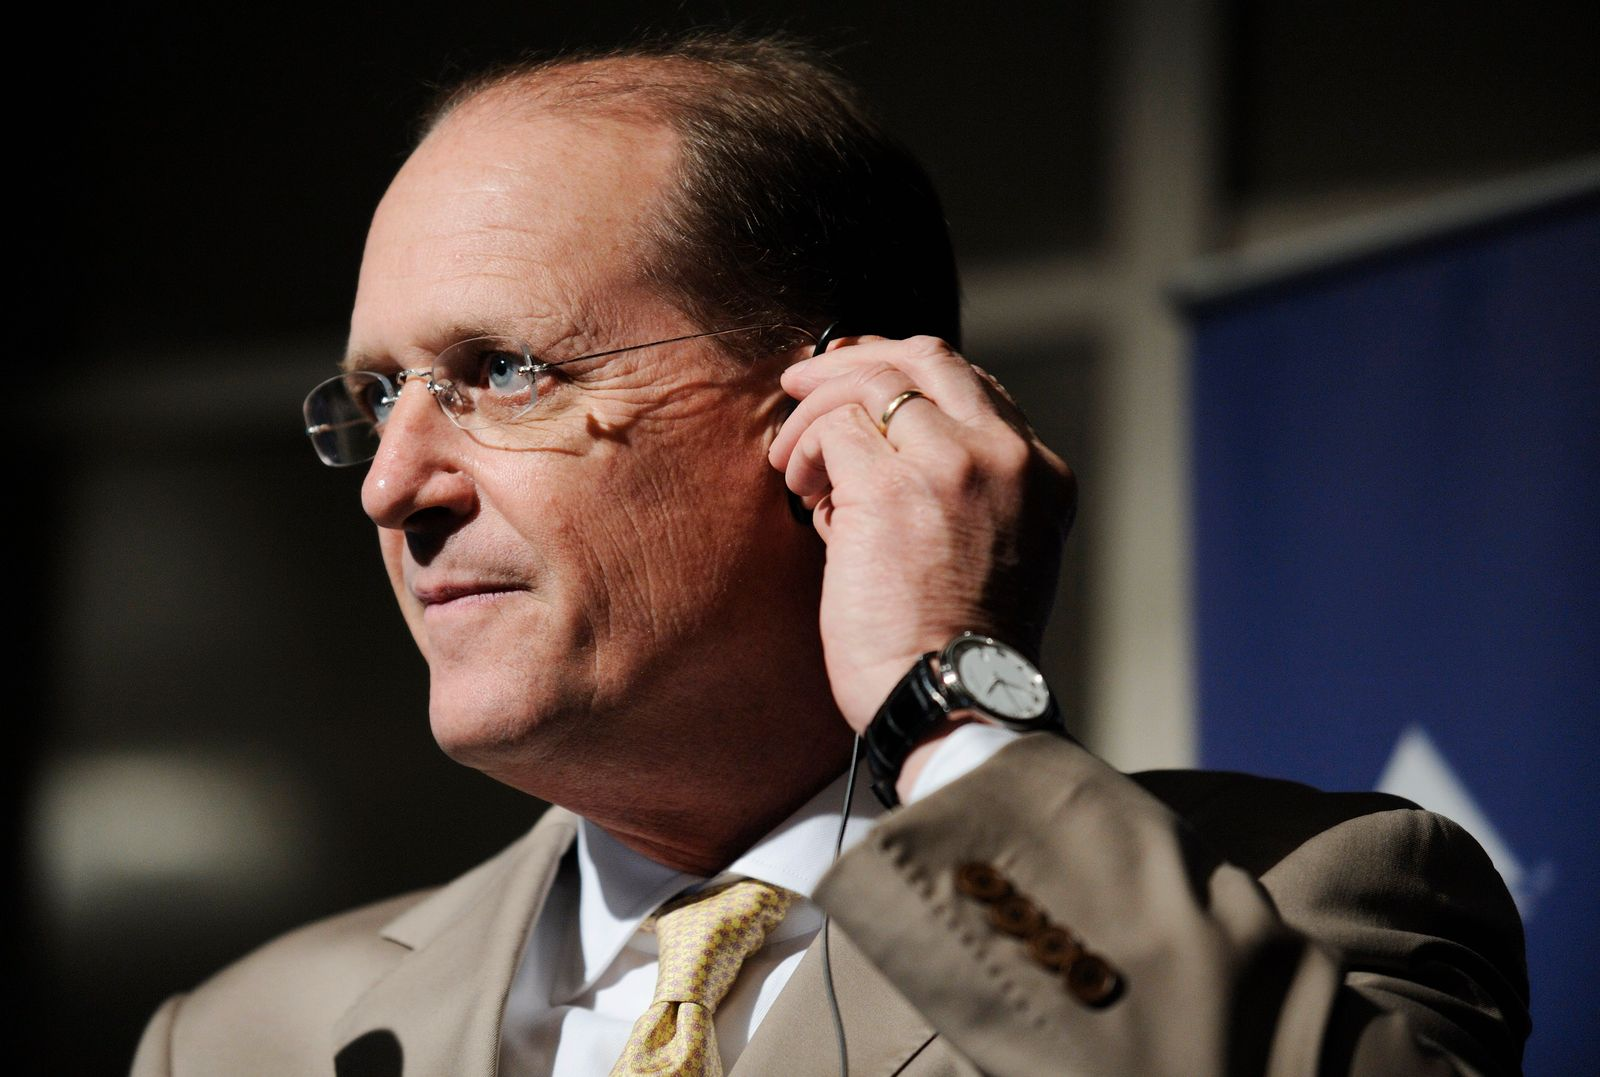 Delta Air Lines CEO Richard Anderson News Conference